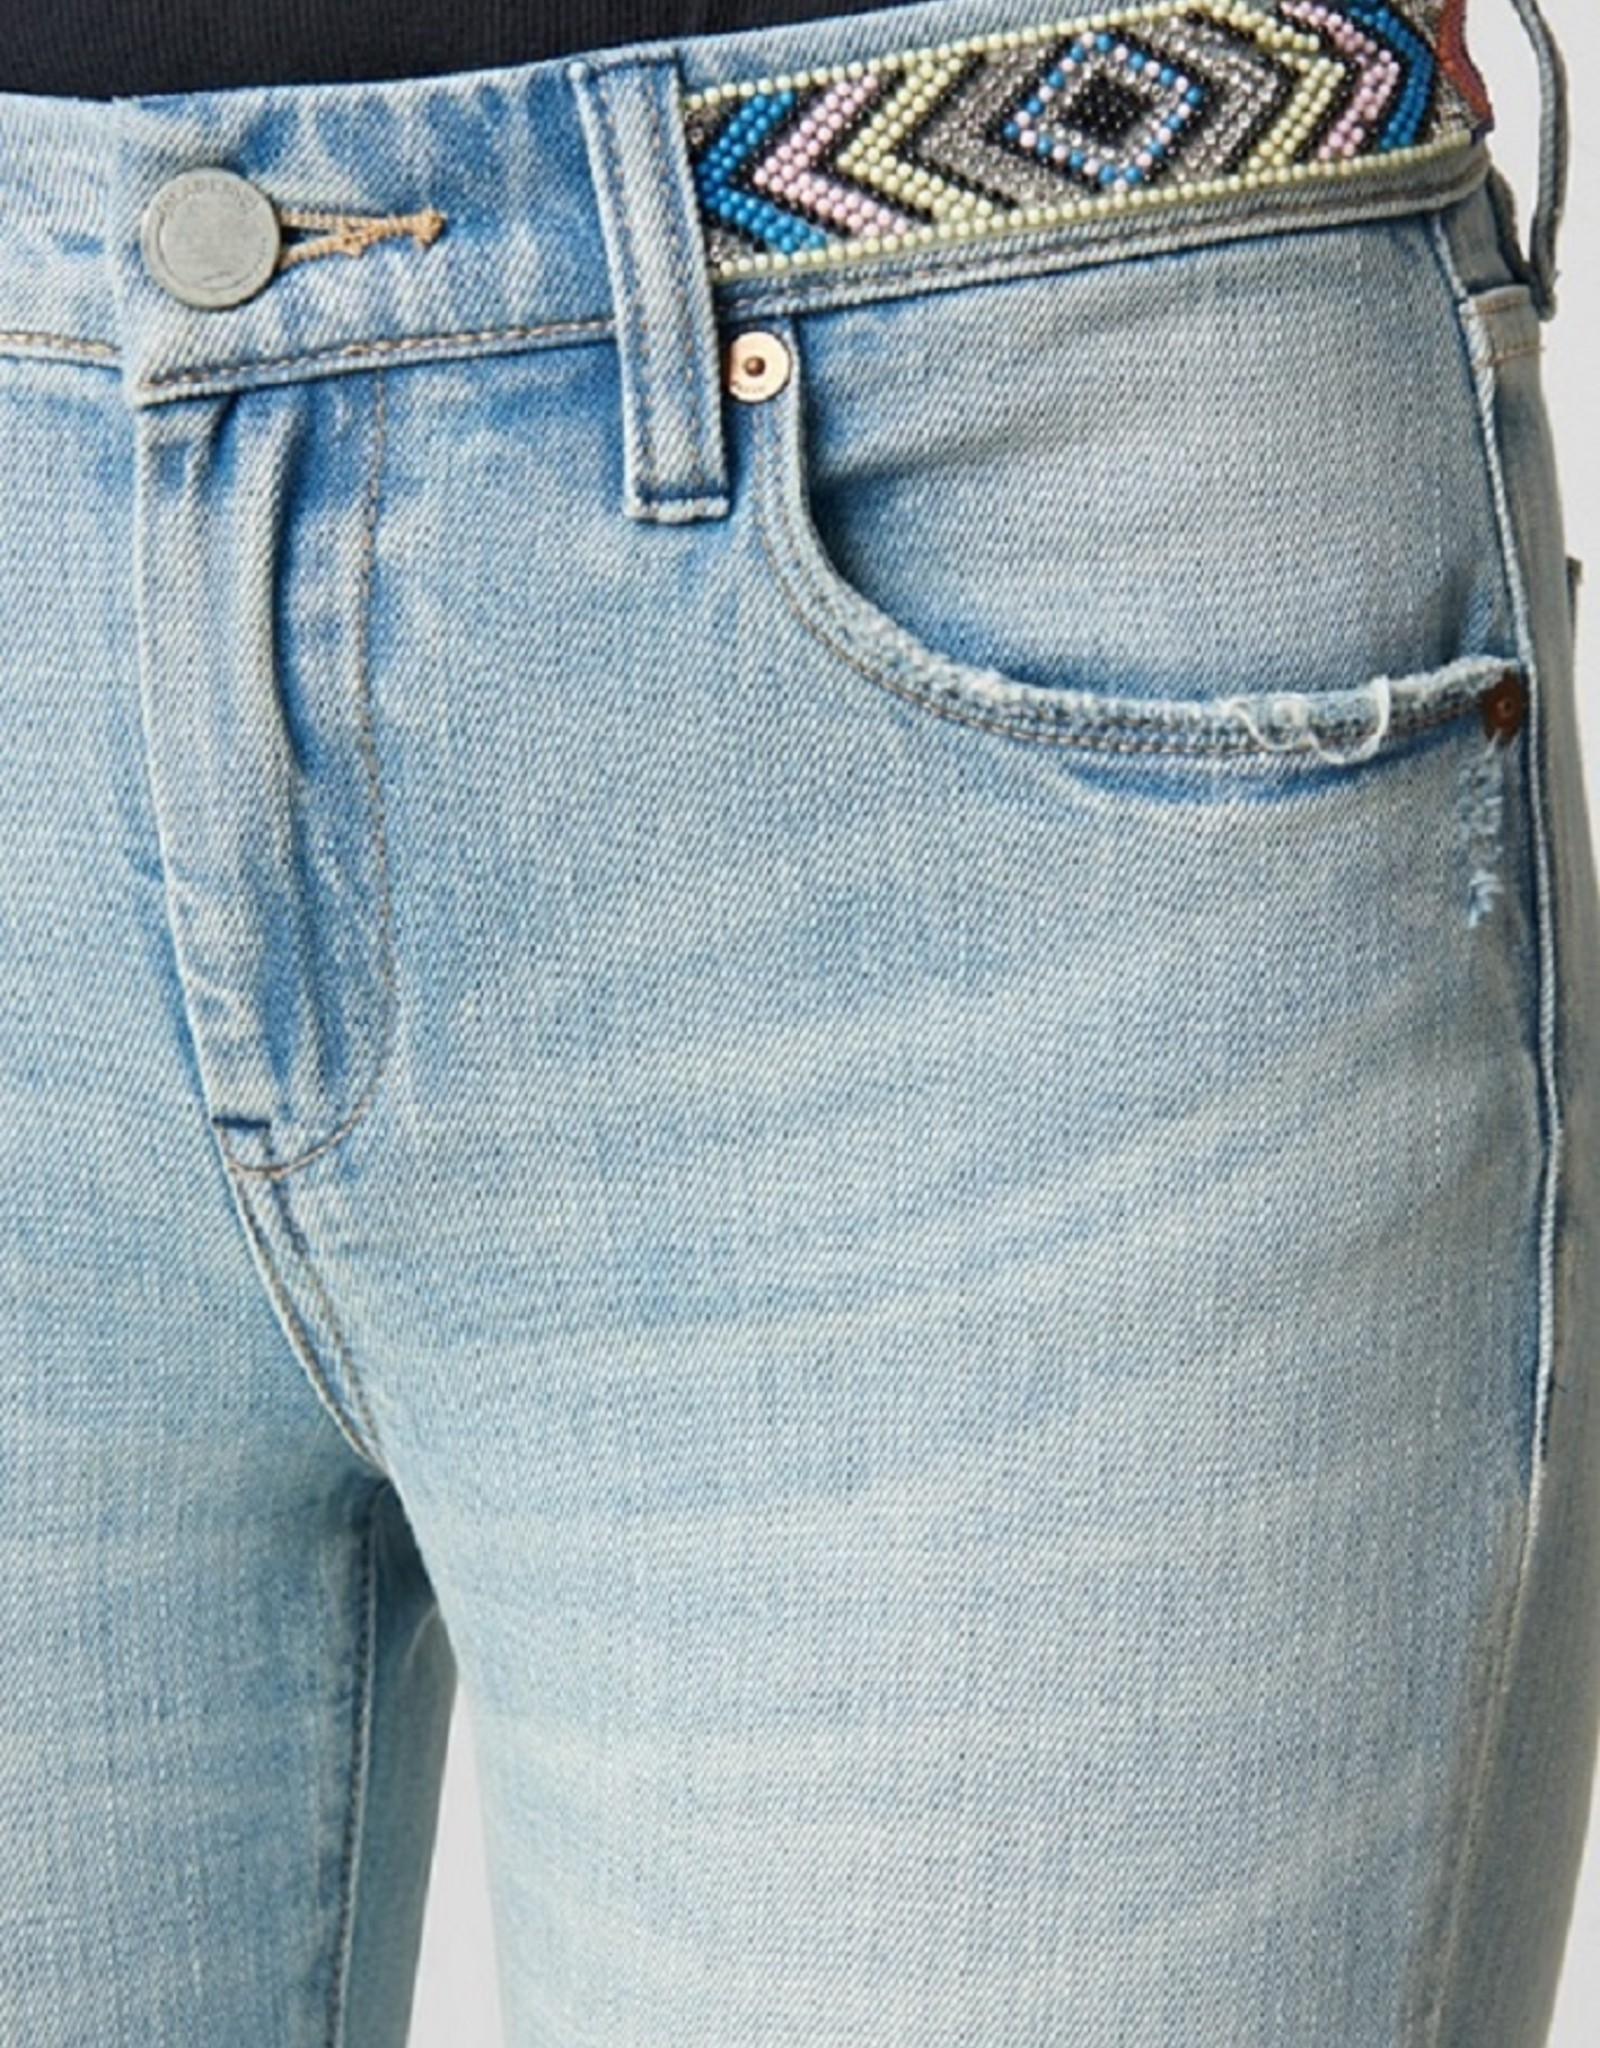 BlankNYC BlankNYC Reade Crop High Waist Jeans in Nashville Indigo with Beaded Waistband